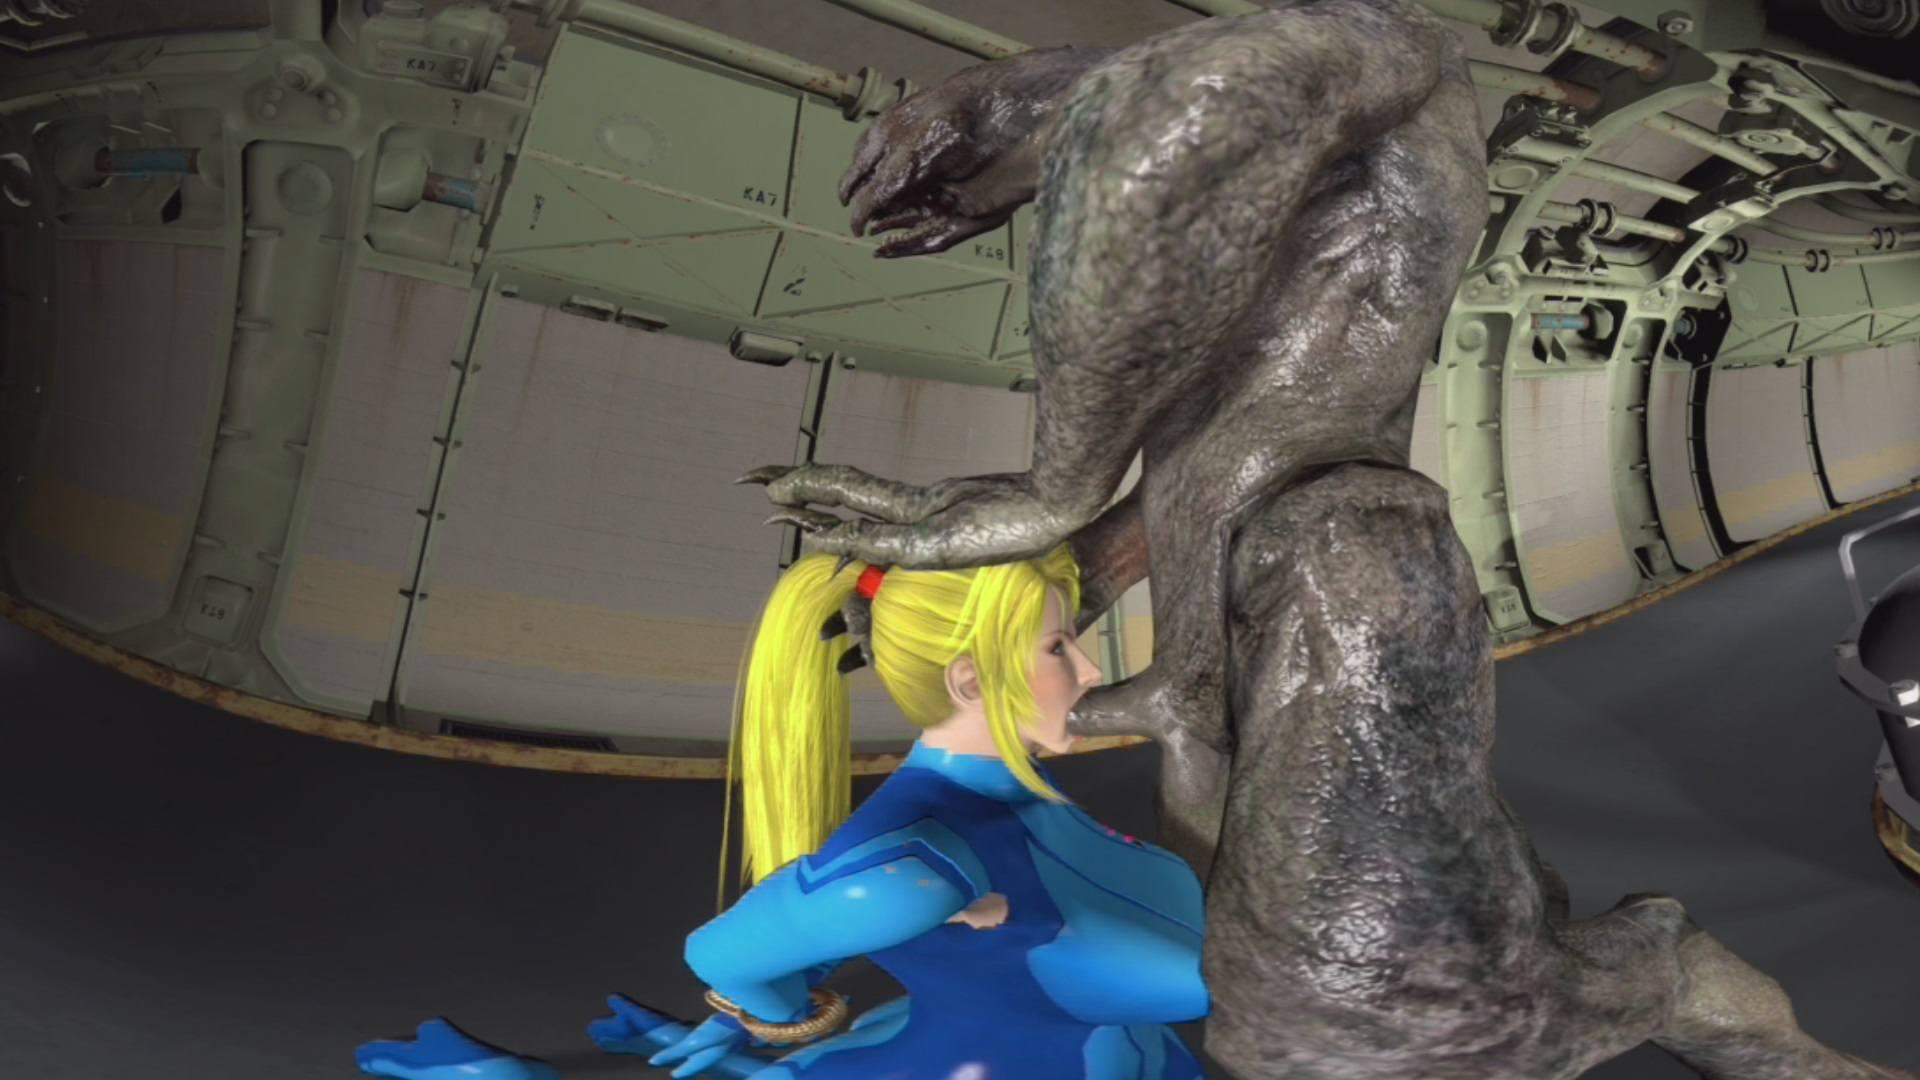 samus throat fucked by an alien vr porn video vrporn com